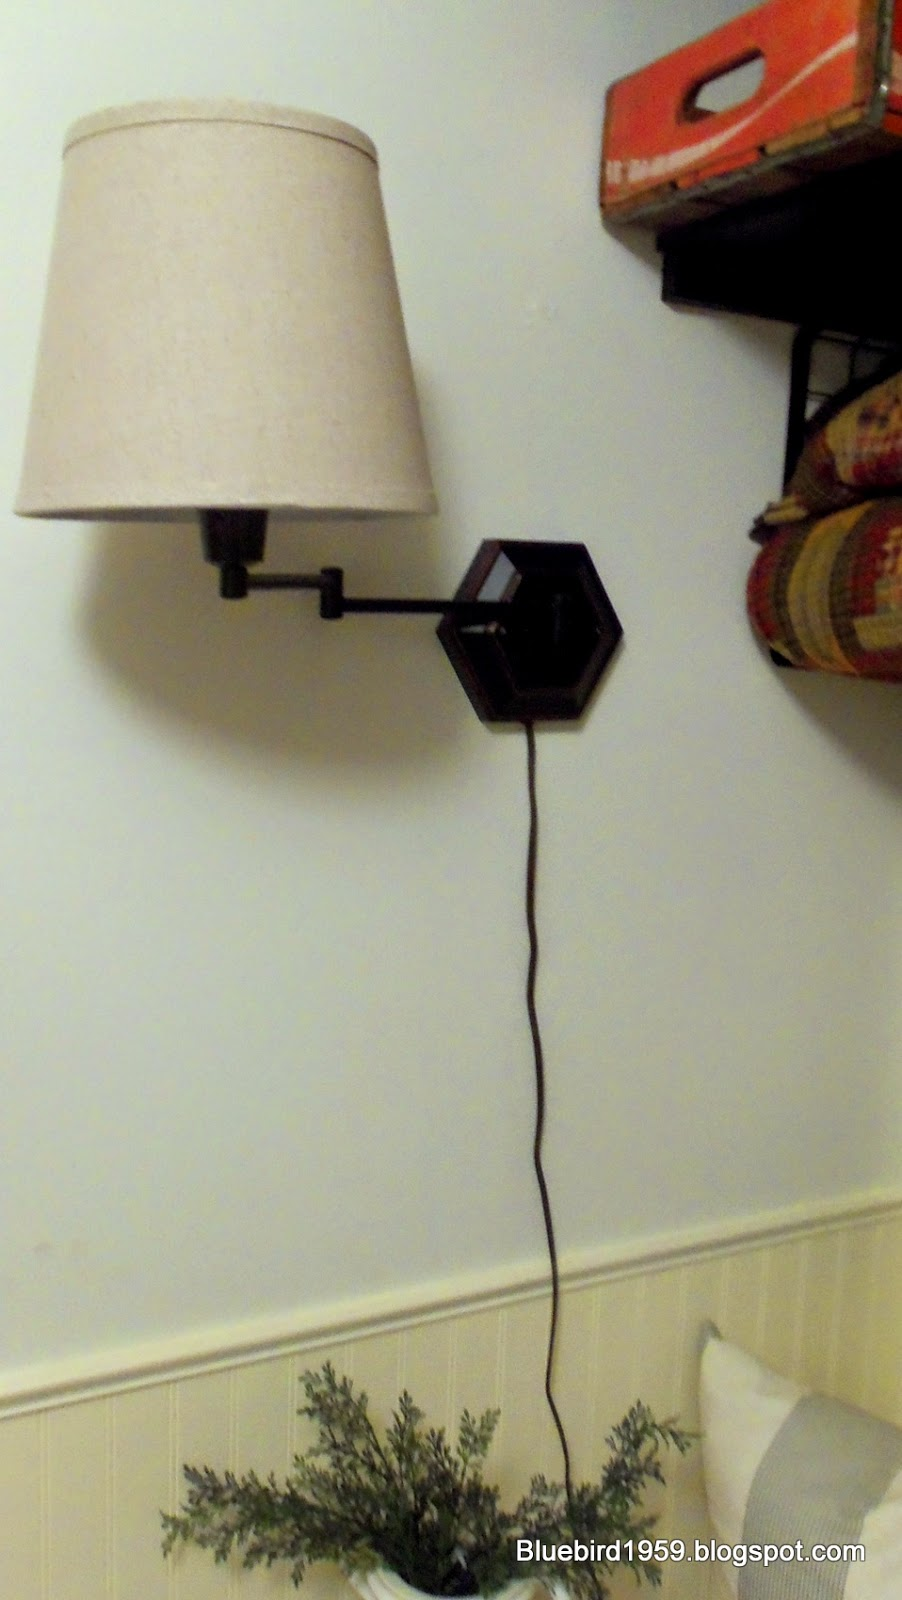 bluebird1959 easy diy cord cover. Black Bedroom Furniture Sets. Home Design Ideas